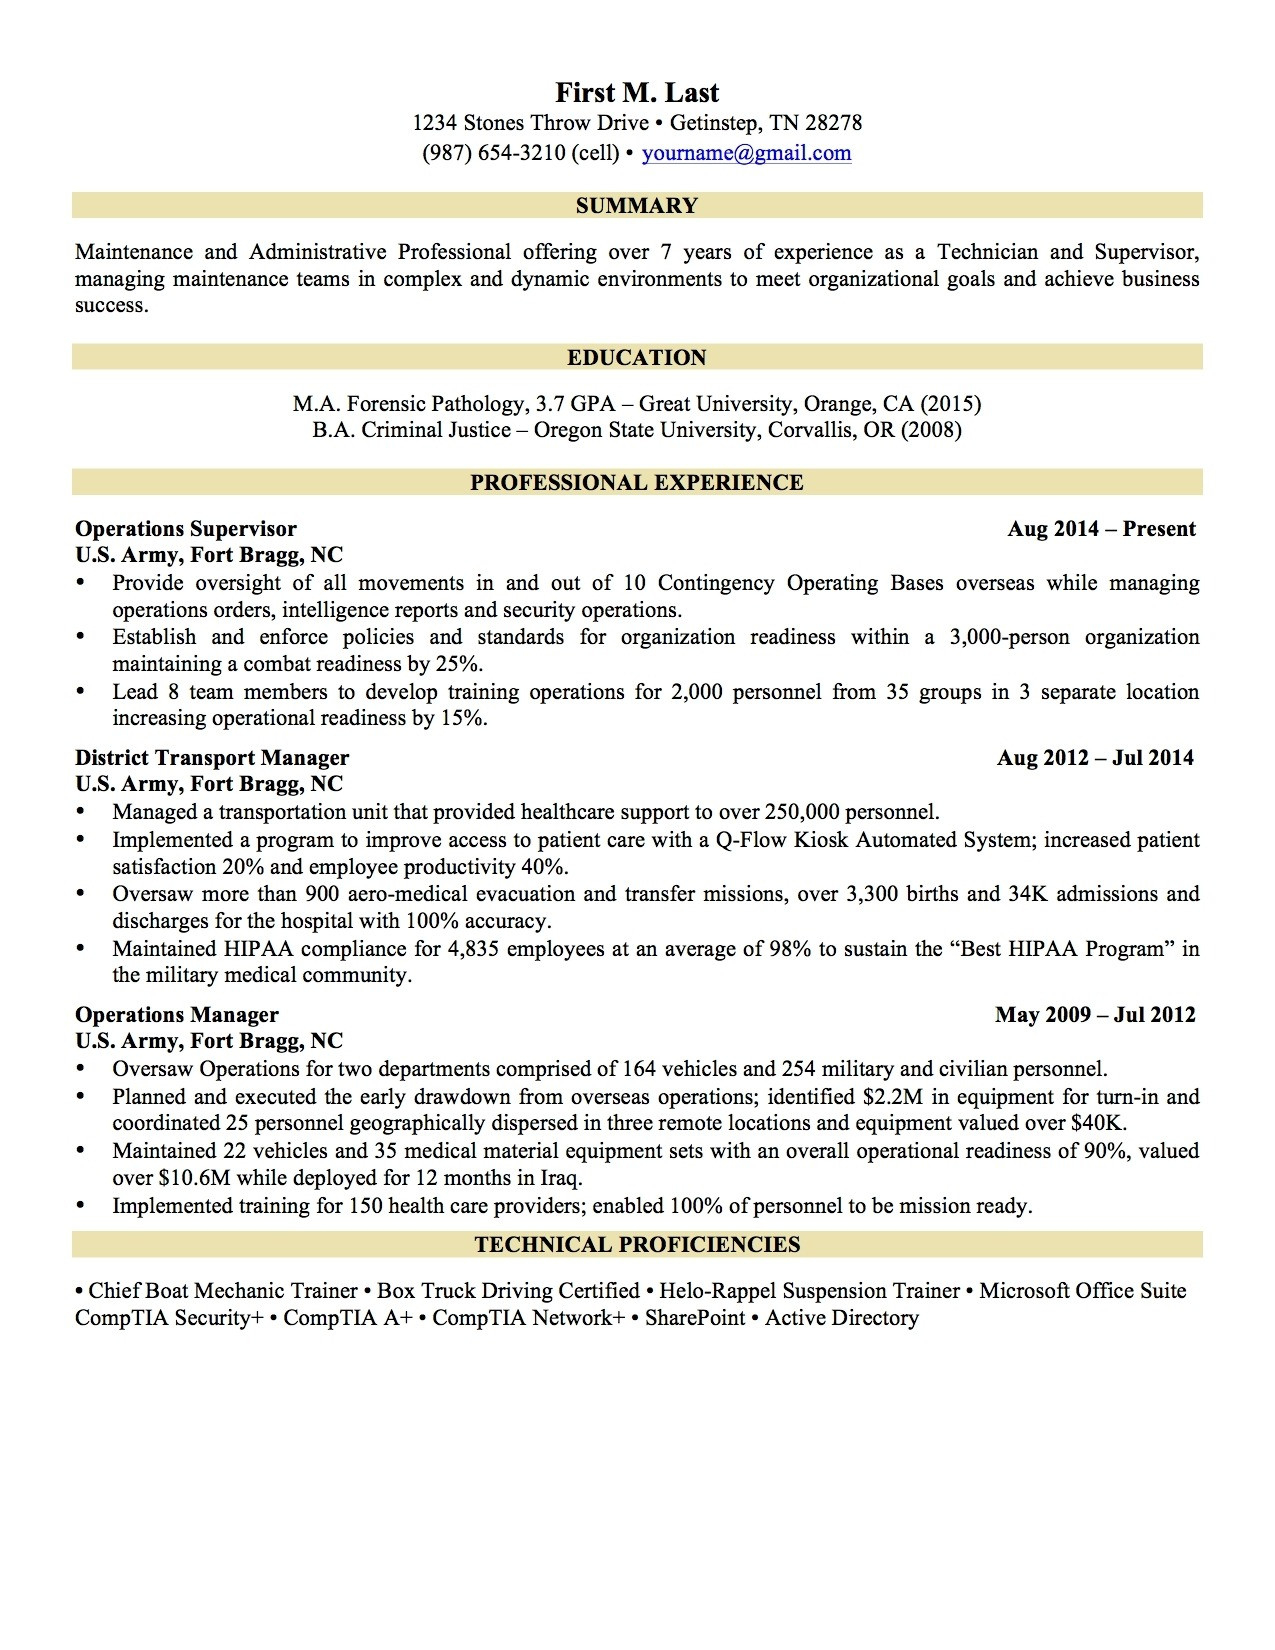 Military to Civilian Resume - Military Resume format Fresh Military Civilian Resume Template